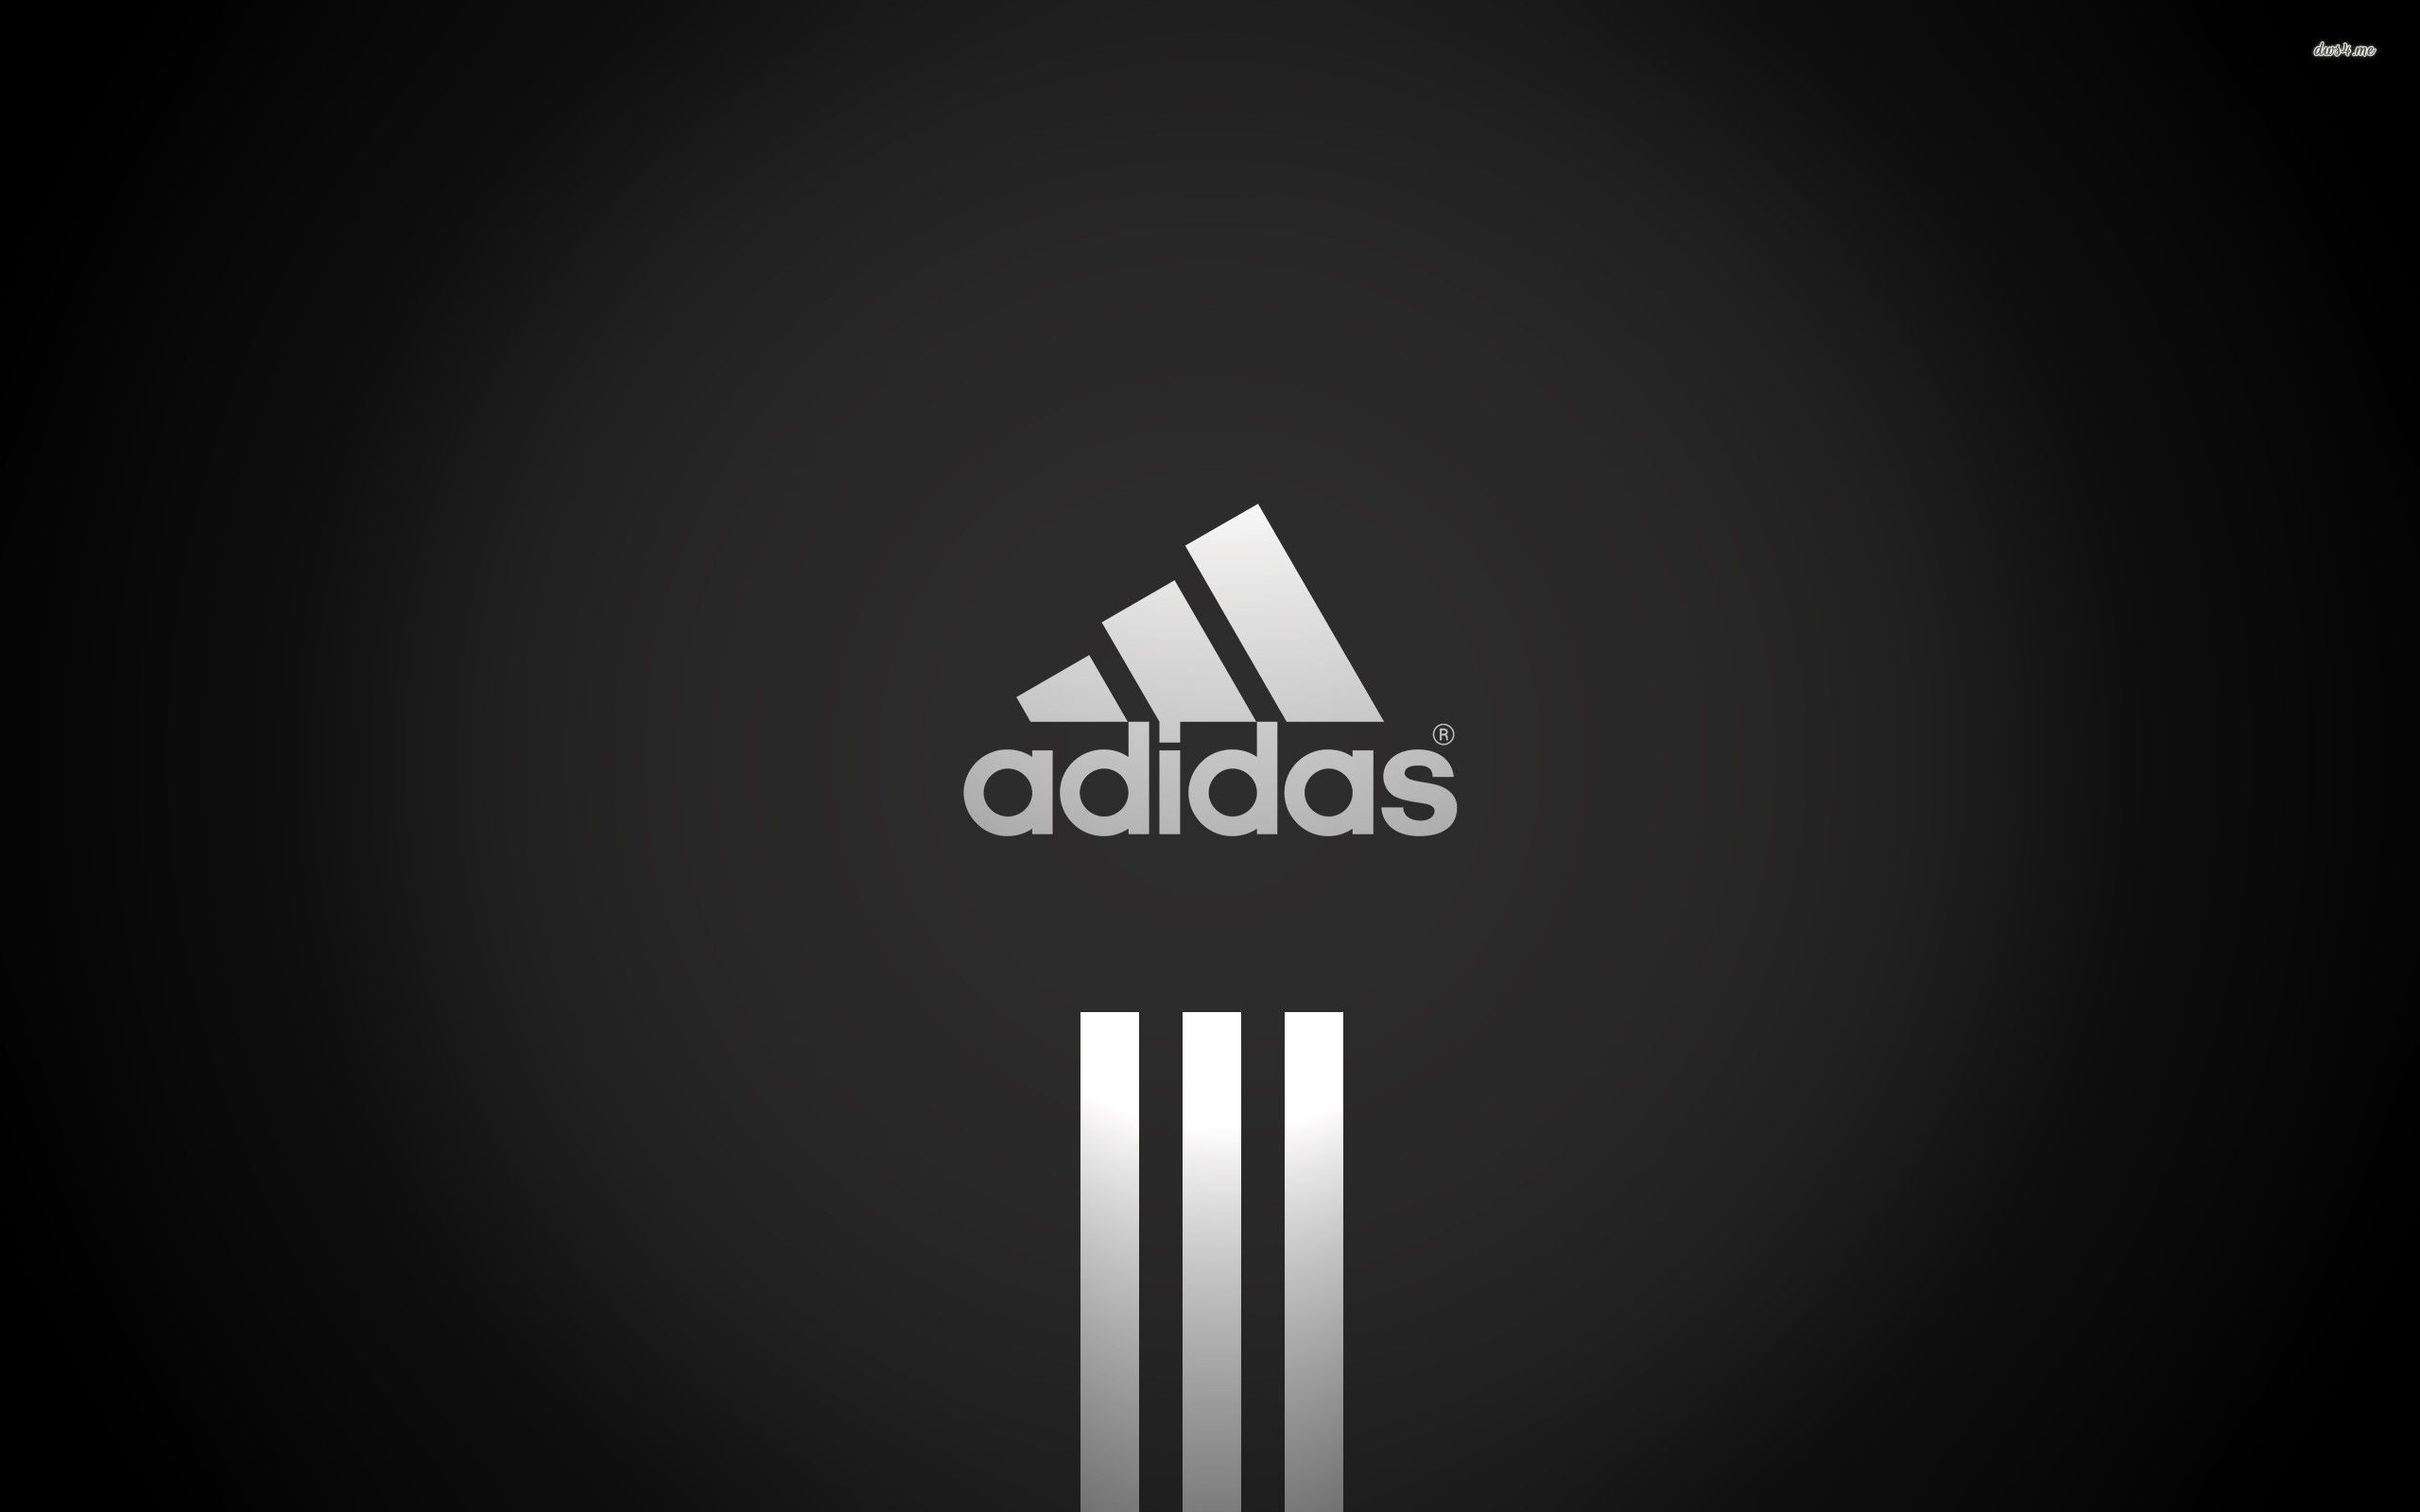 Best Wallpaper Adidas Iphone 6s Plus - 106247-best-adidas-wallpaper-2560x1600  Perfect Image Reference_689958      .jpg